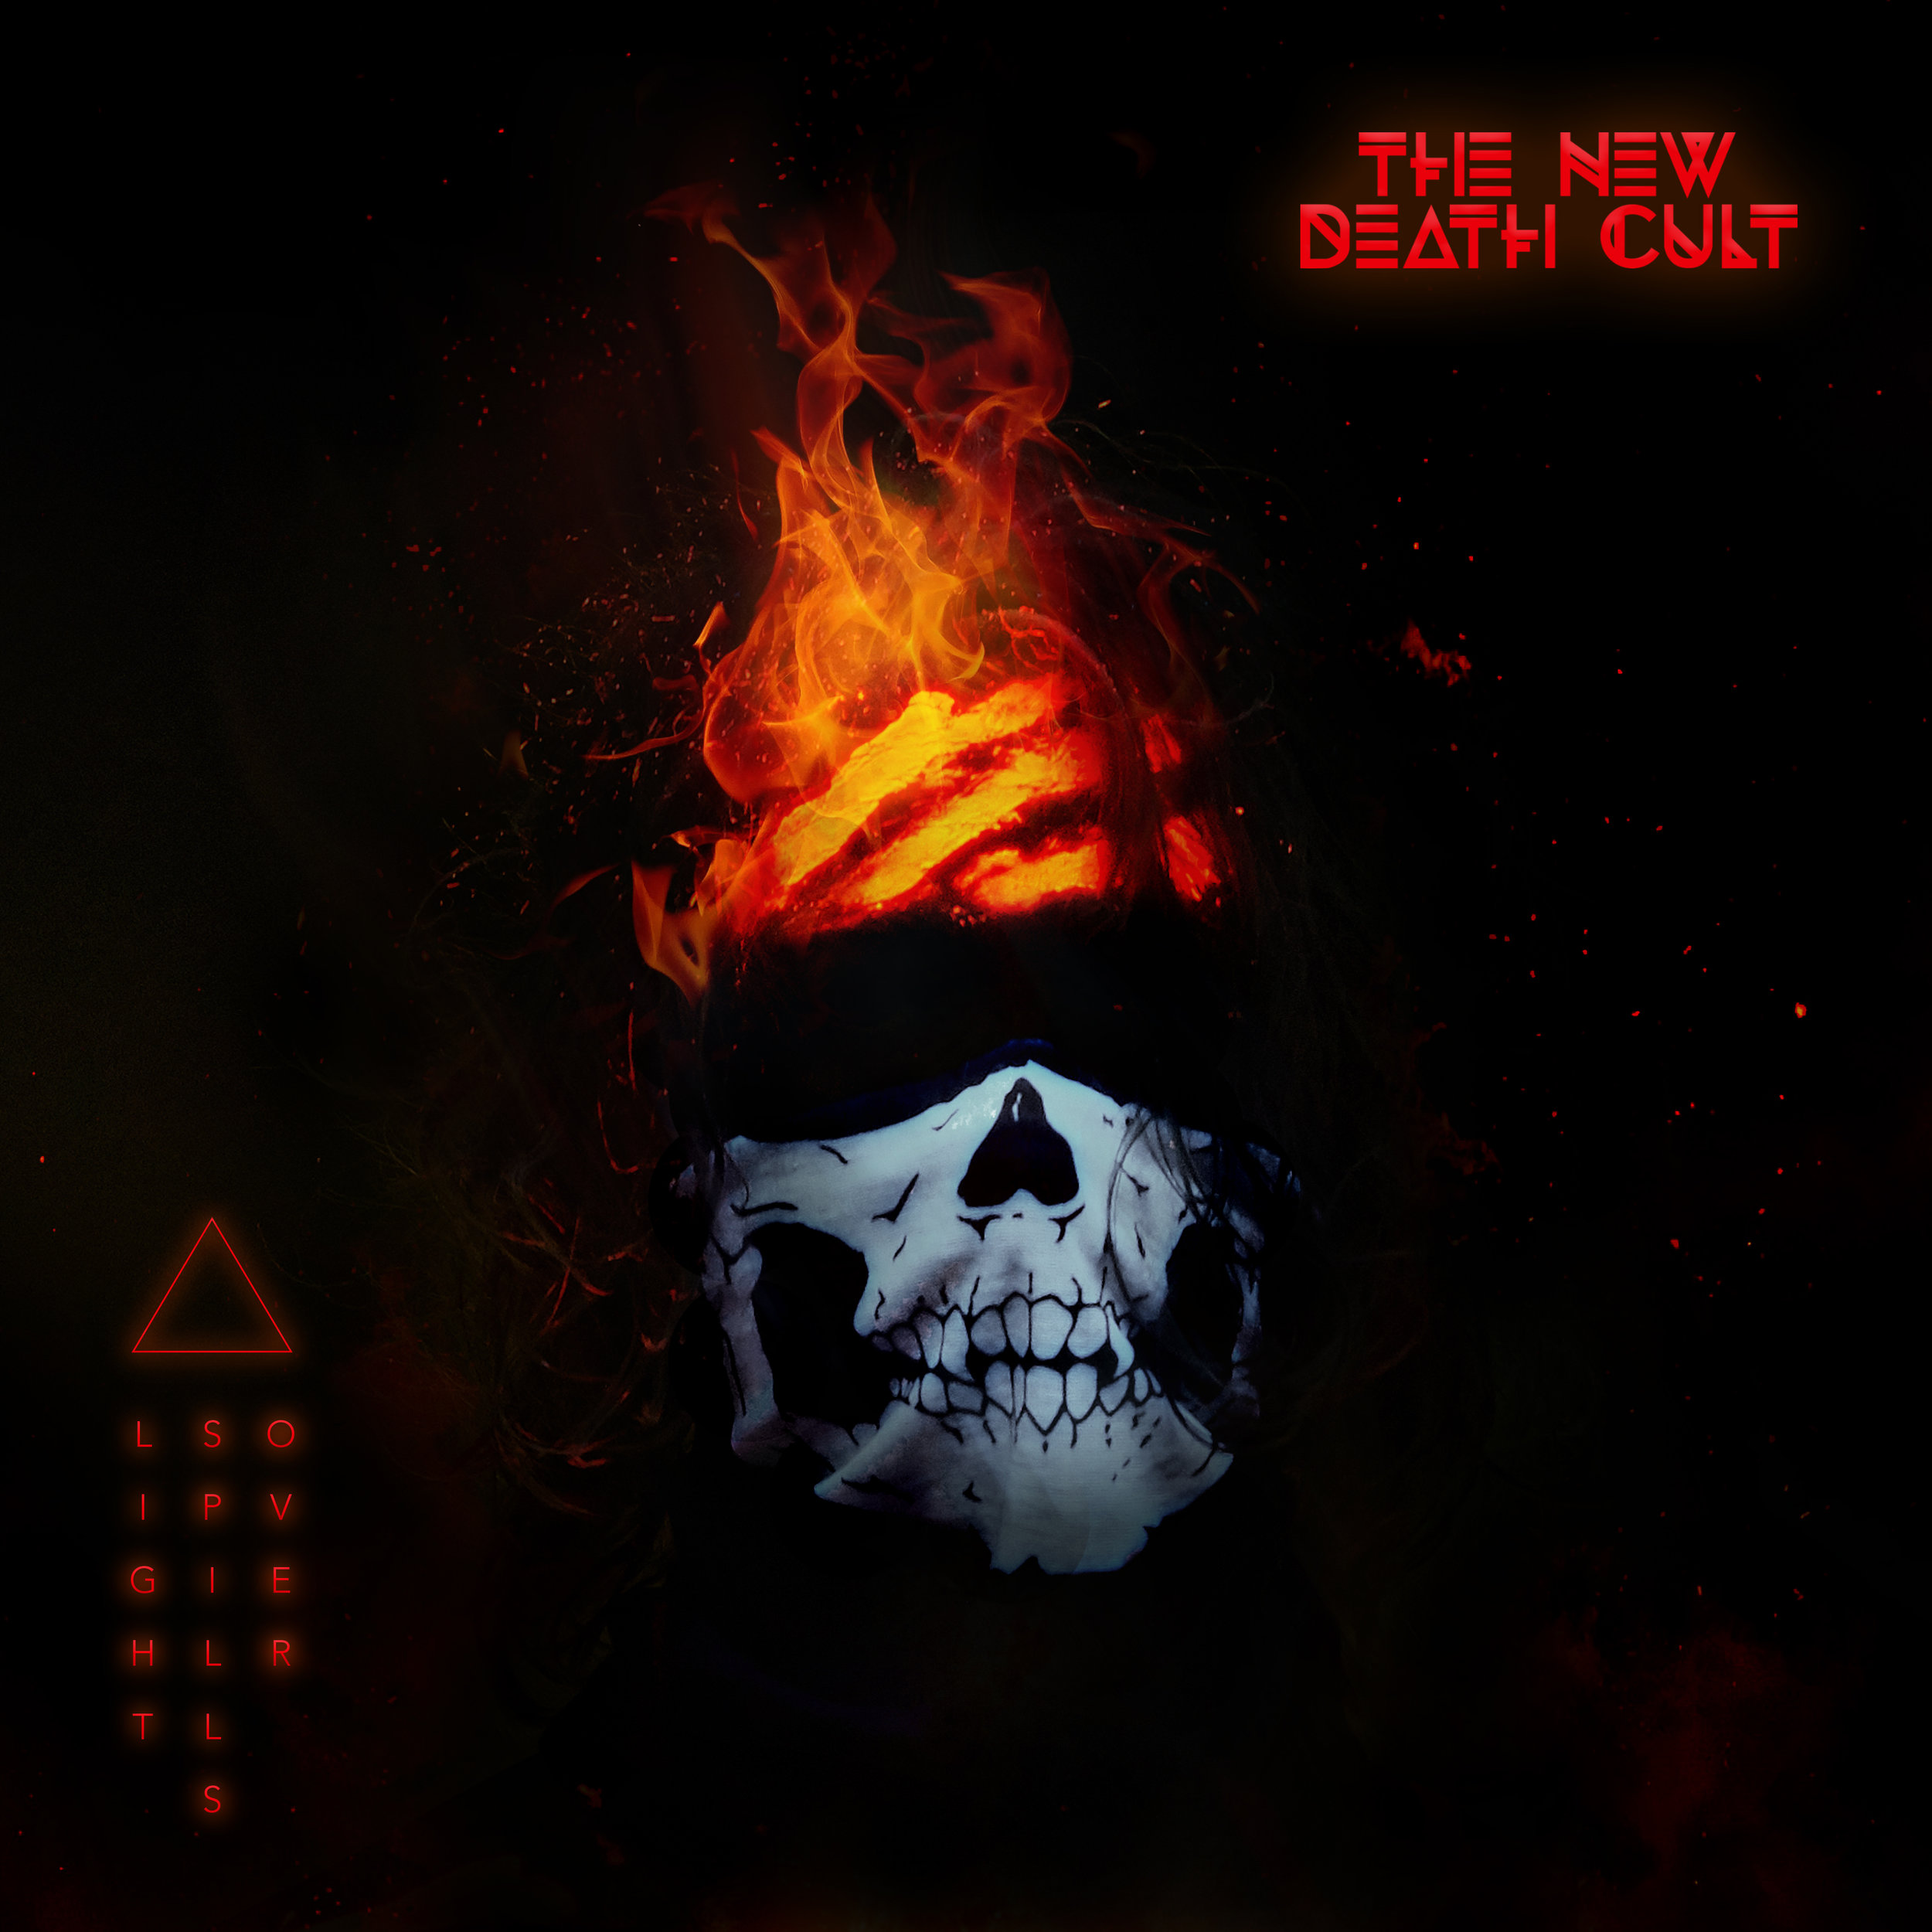 The New Death Cult Light-Spills-Over_ Single Cover.jpg